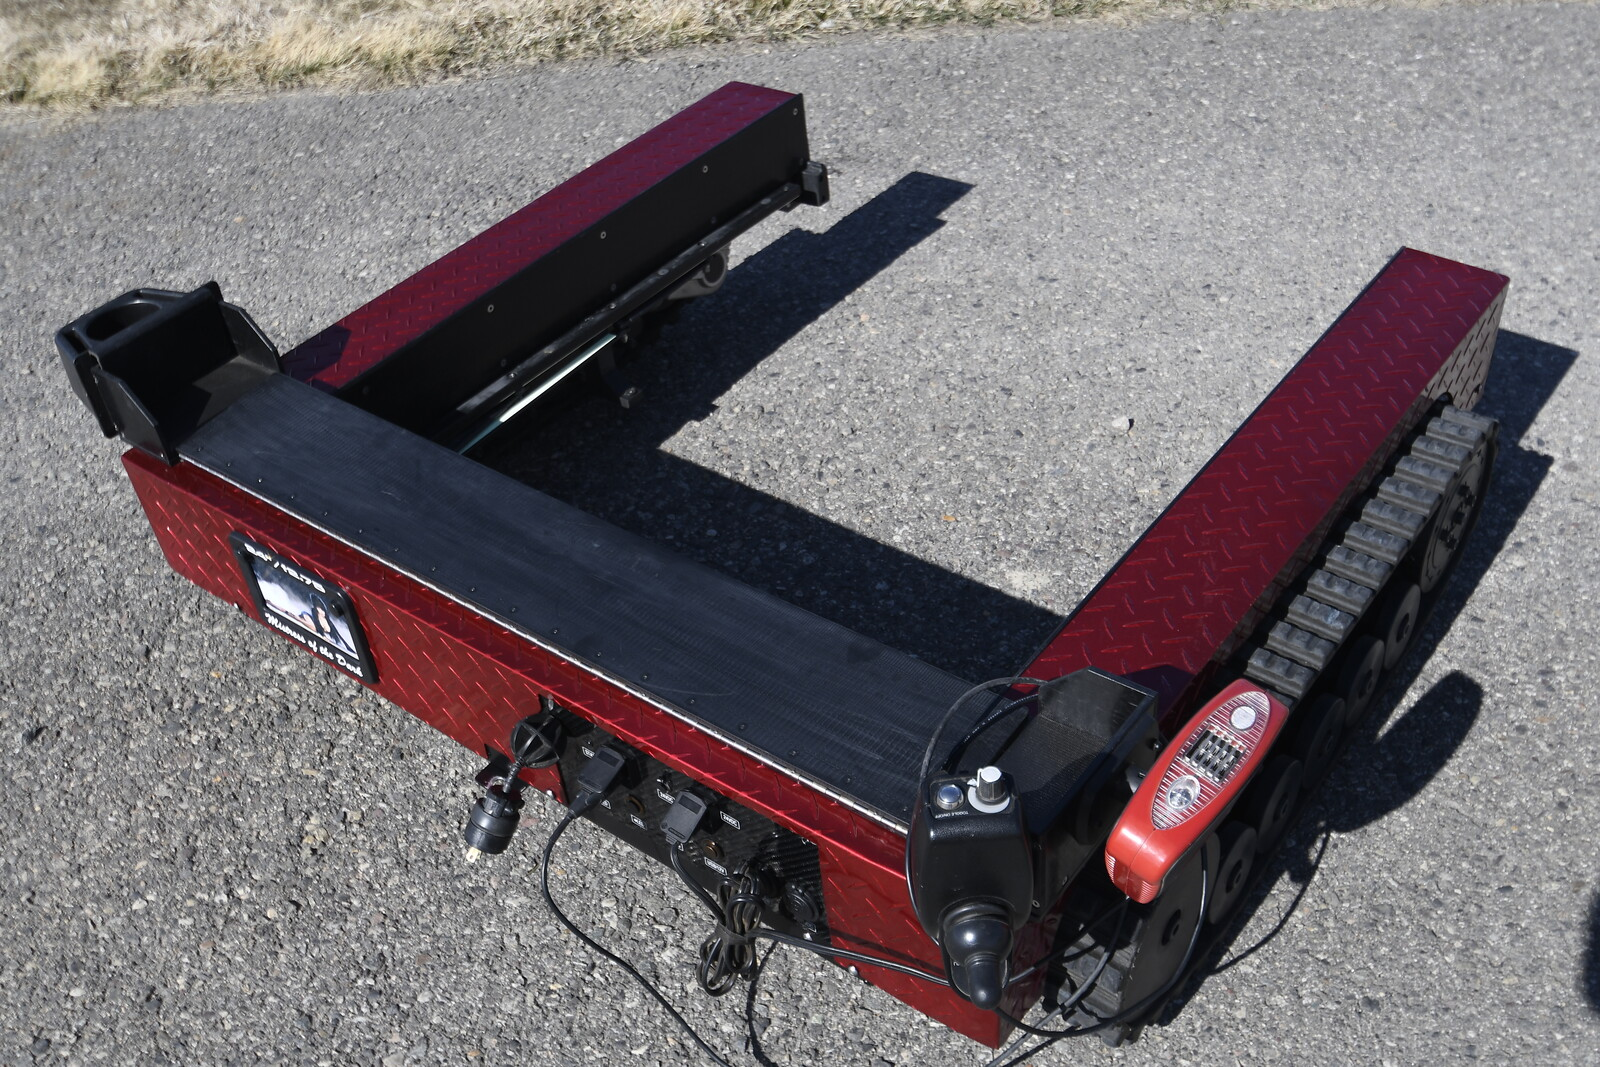 CRAWLER - REAR VIEW